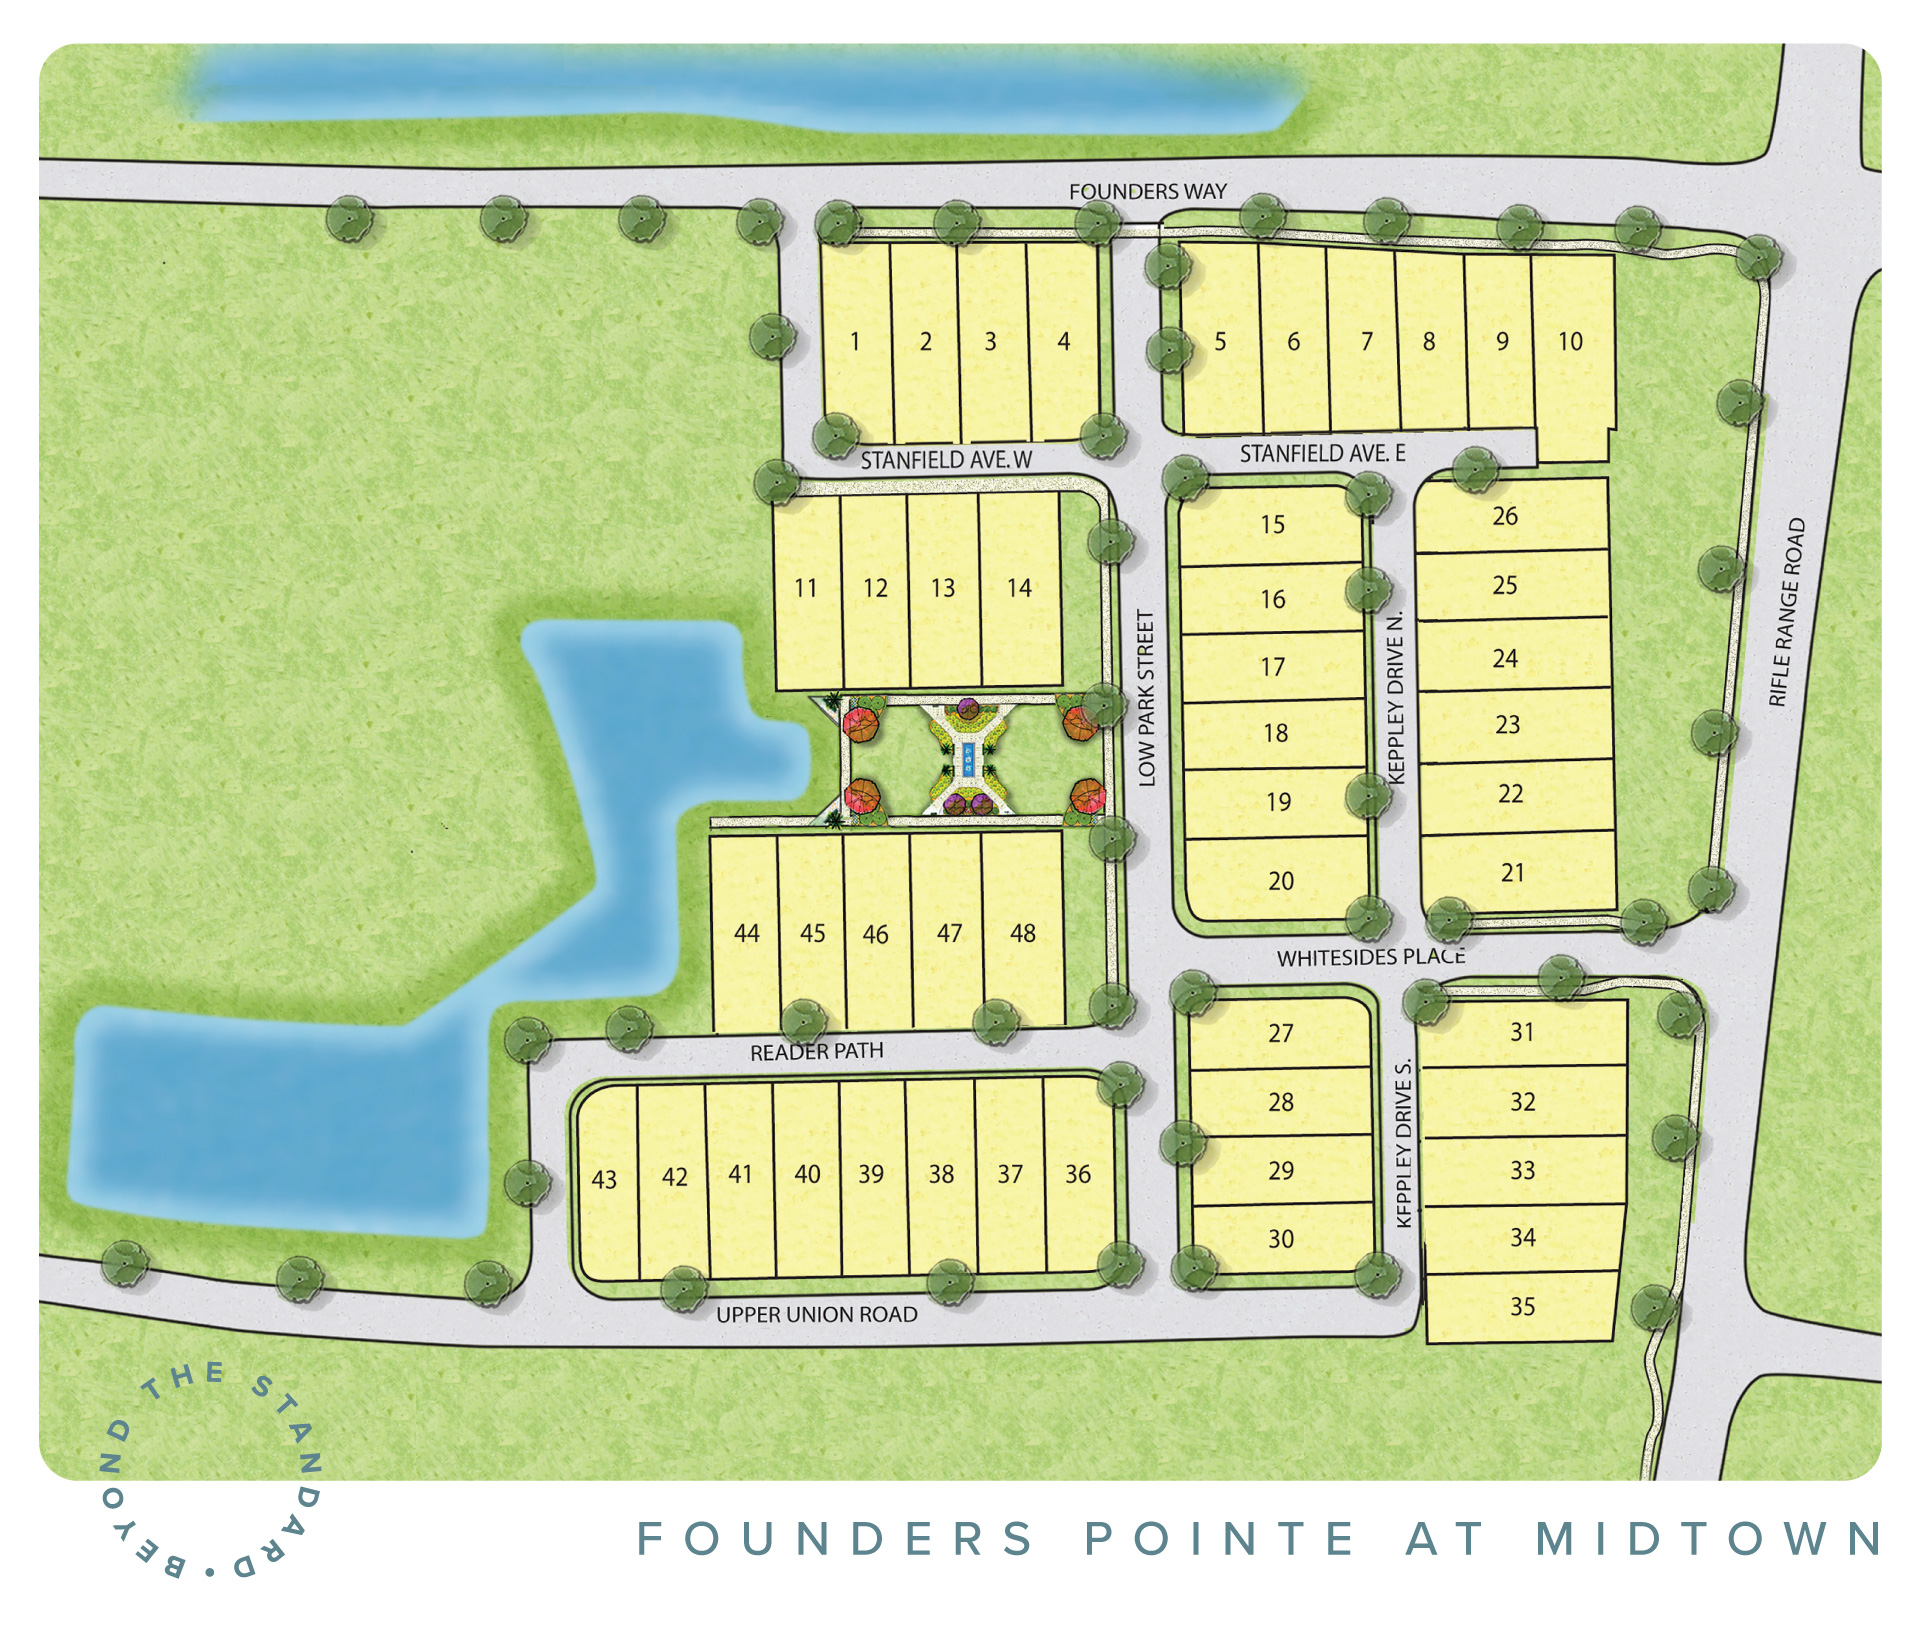 Mount Pleasant, SC Founders Pointe at Midtown New Homes